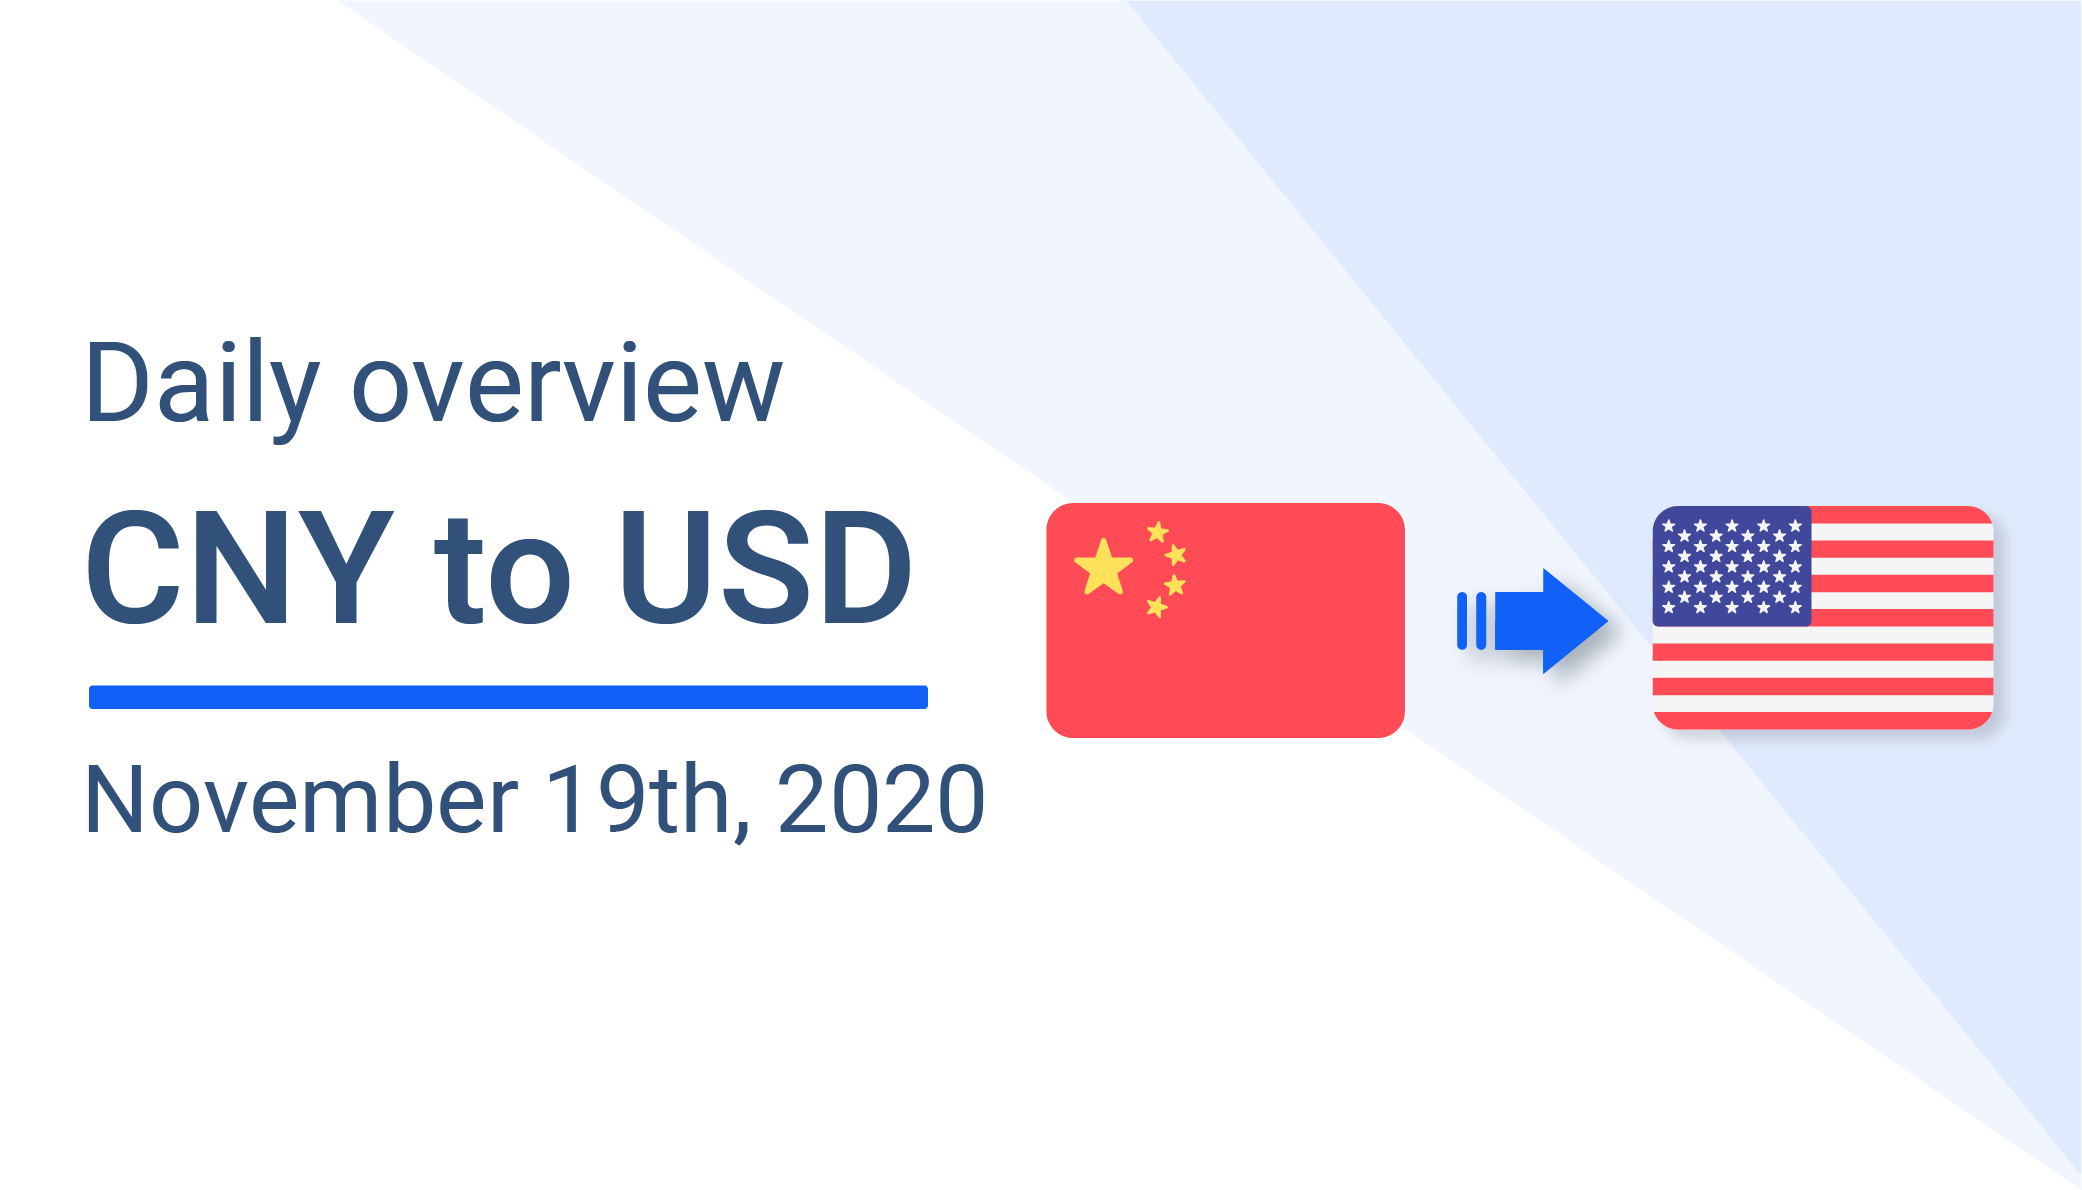 USD to CNY Daily Overview: November 19th